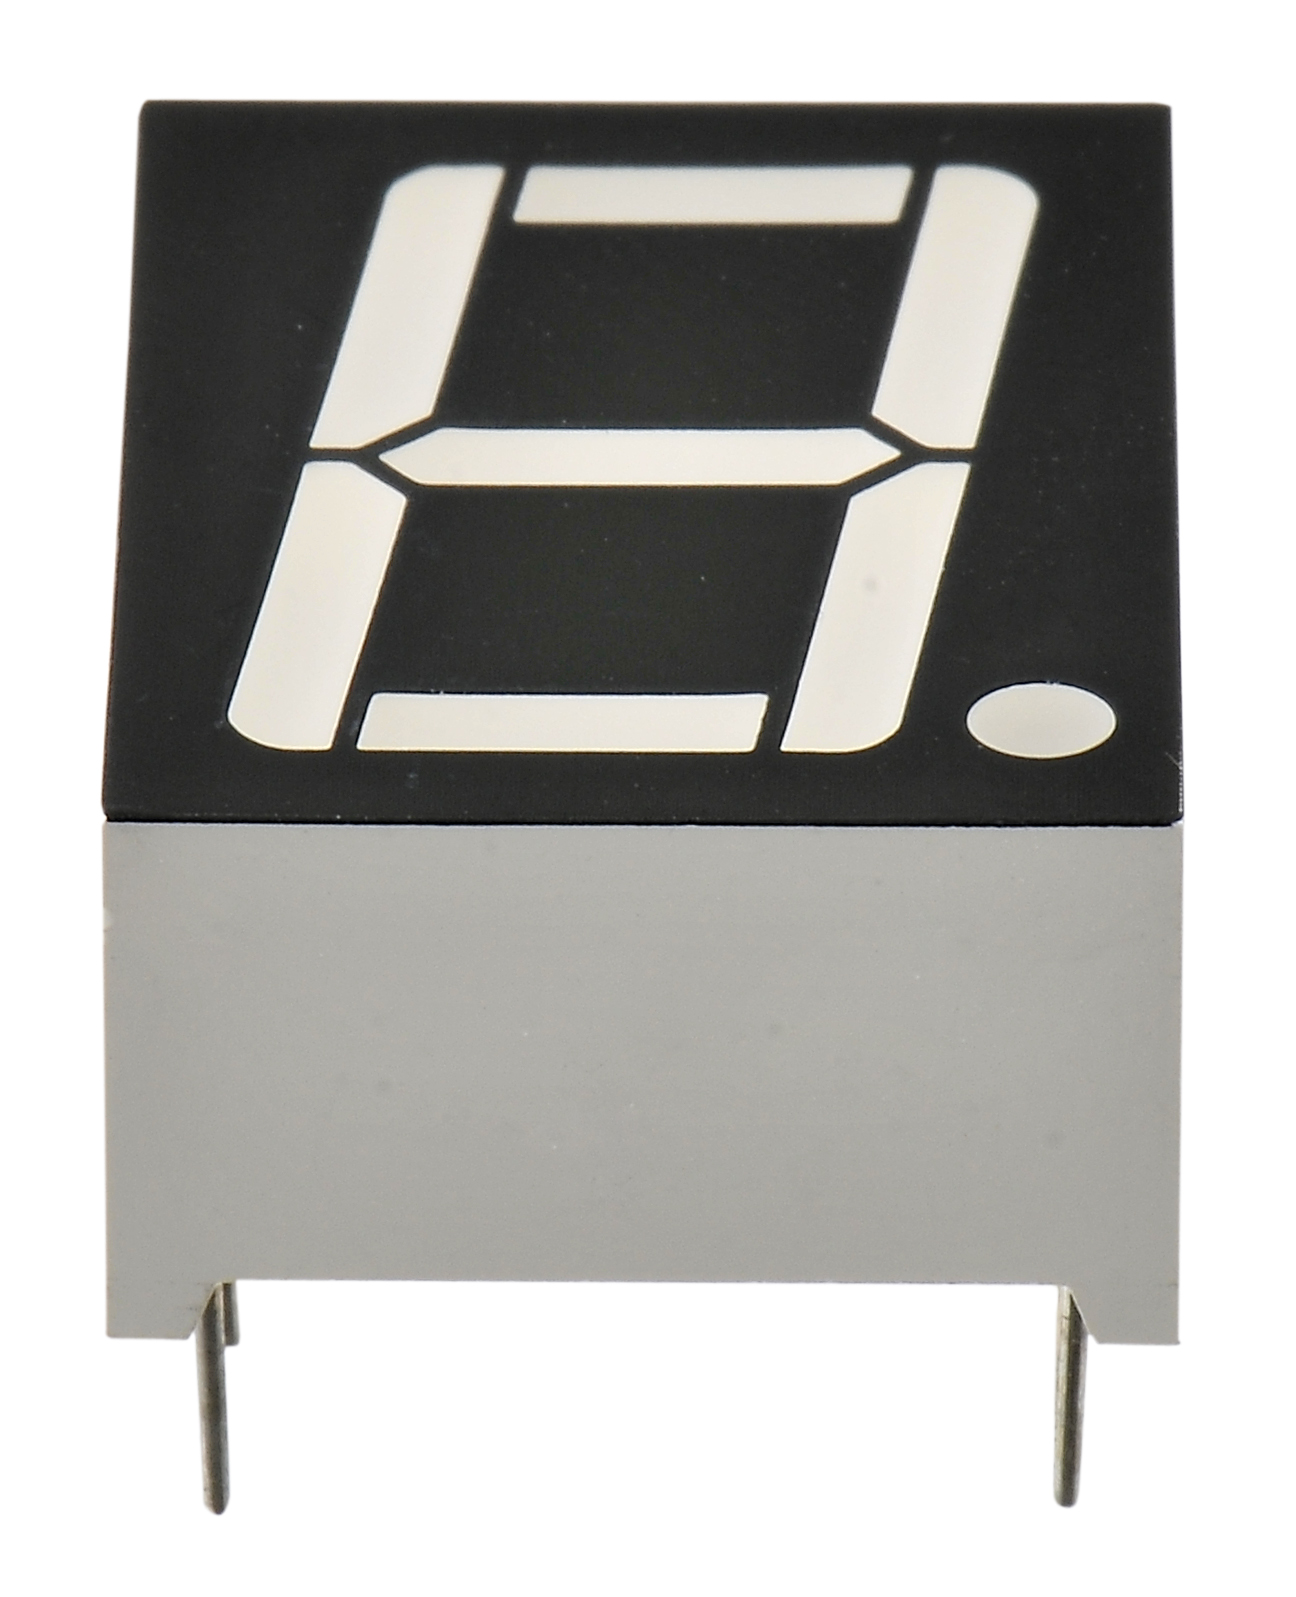 Taiwan Led Display 7 Segment Single Digit Yellow Green Colour The Each Symbol Into 7segment It May Look Like This